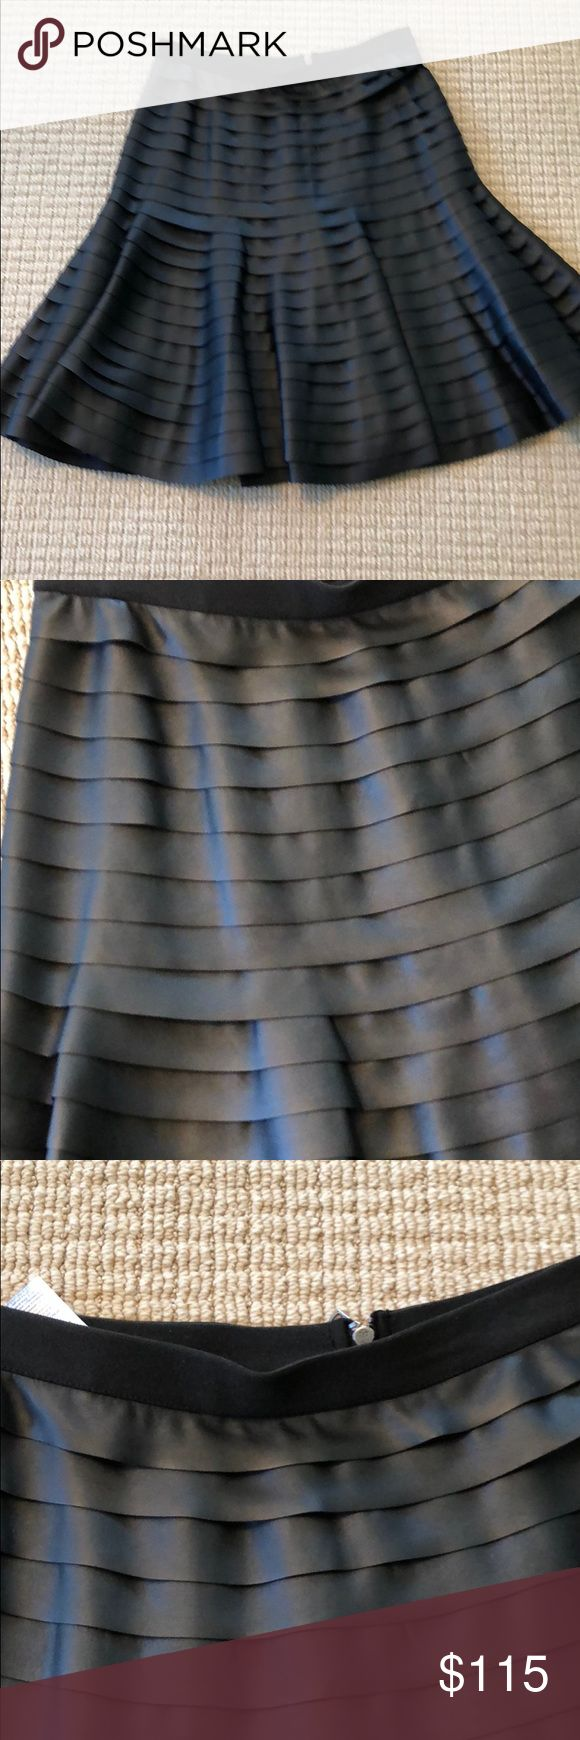 """BCBG faux leather skirt size xxs BNWT Brand new with tags from Bloomingdales  BCBG  black Faux leather layered skirt size XXS. Fits snug up top then flares out. Great stylish skirt. Hits me below knee and I am 5'4"""". Perfect condition. Zipper in back and waist stretch fabric. Originally it was $228. BCBGMaxAzria Skirts A-Line or Full"""